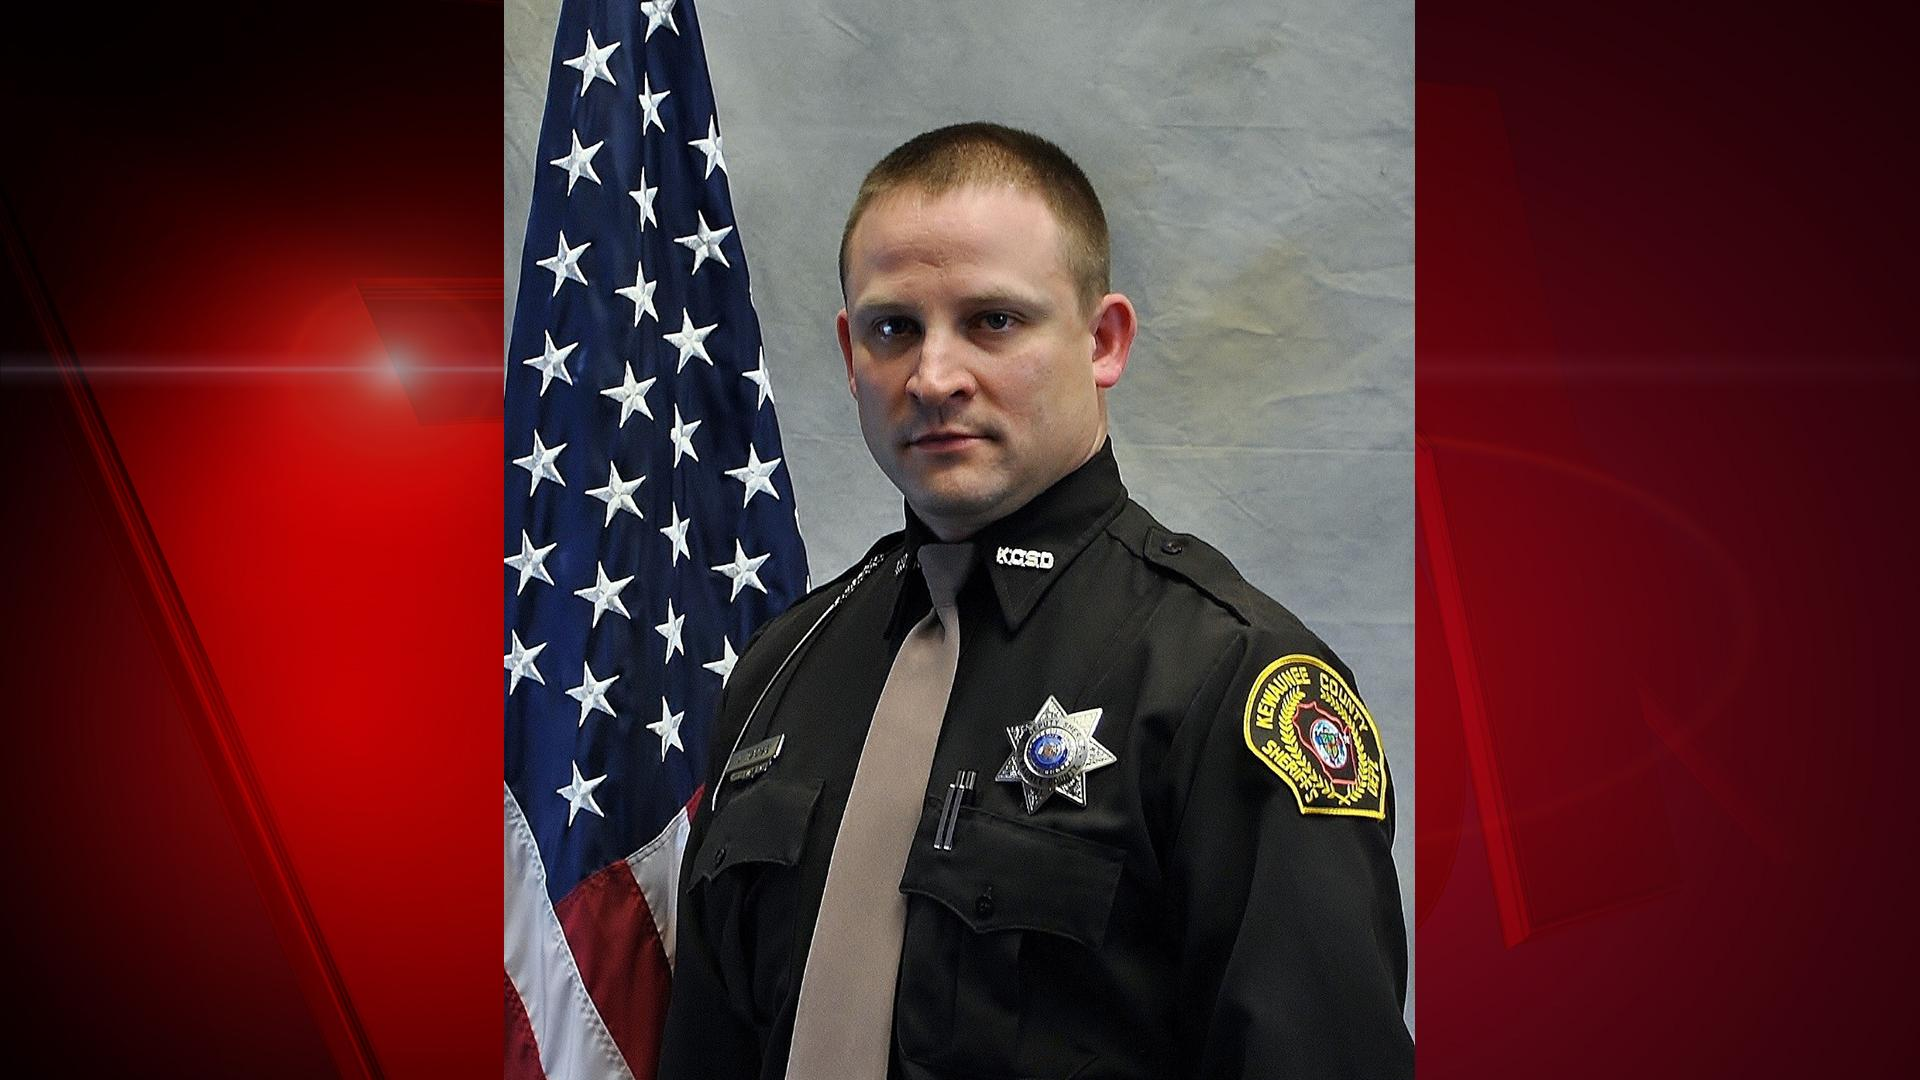 Deputy Jamie A. Tlachac of the Kewaunee County Sheriff's Department (Photo courtesy of the Wisconsin Department of Justice)